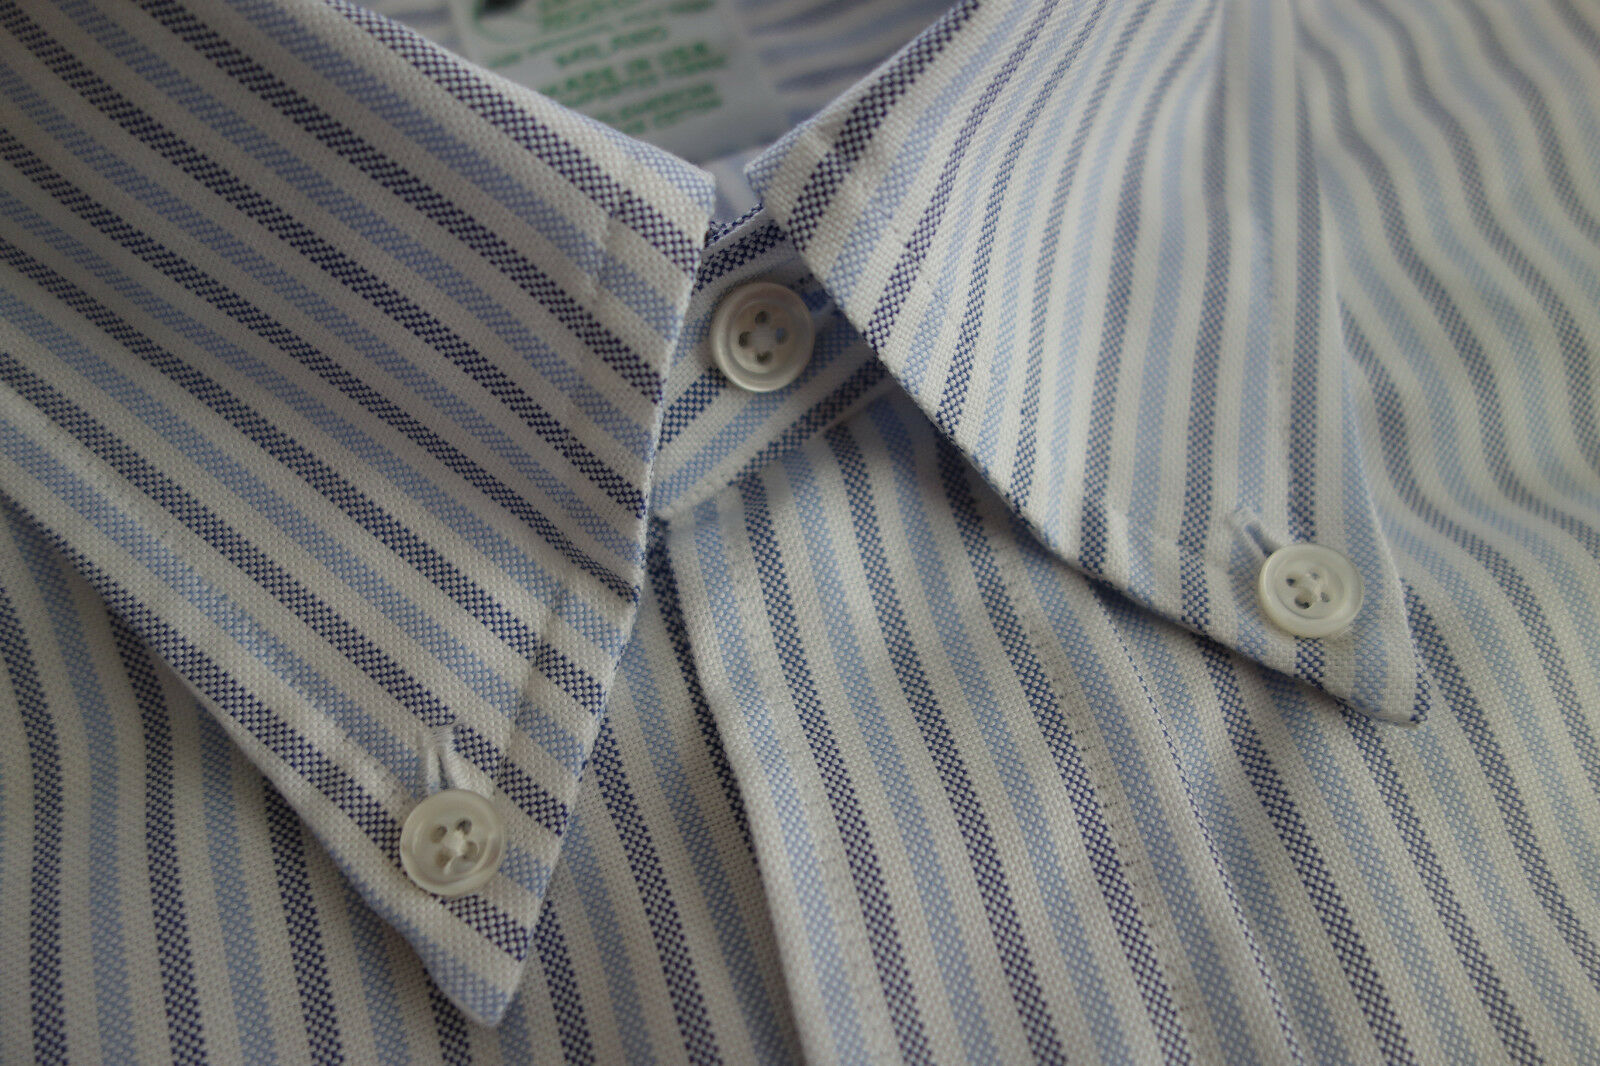 NWOT Brooks Bredhers bluee White Oxford Button Down 14.5-31 Milano MSRP